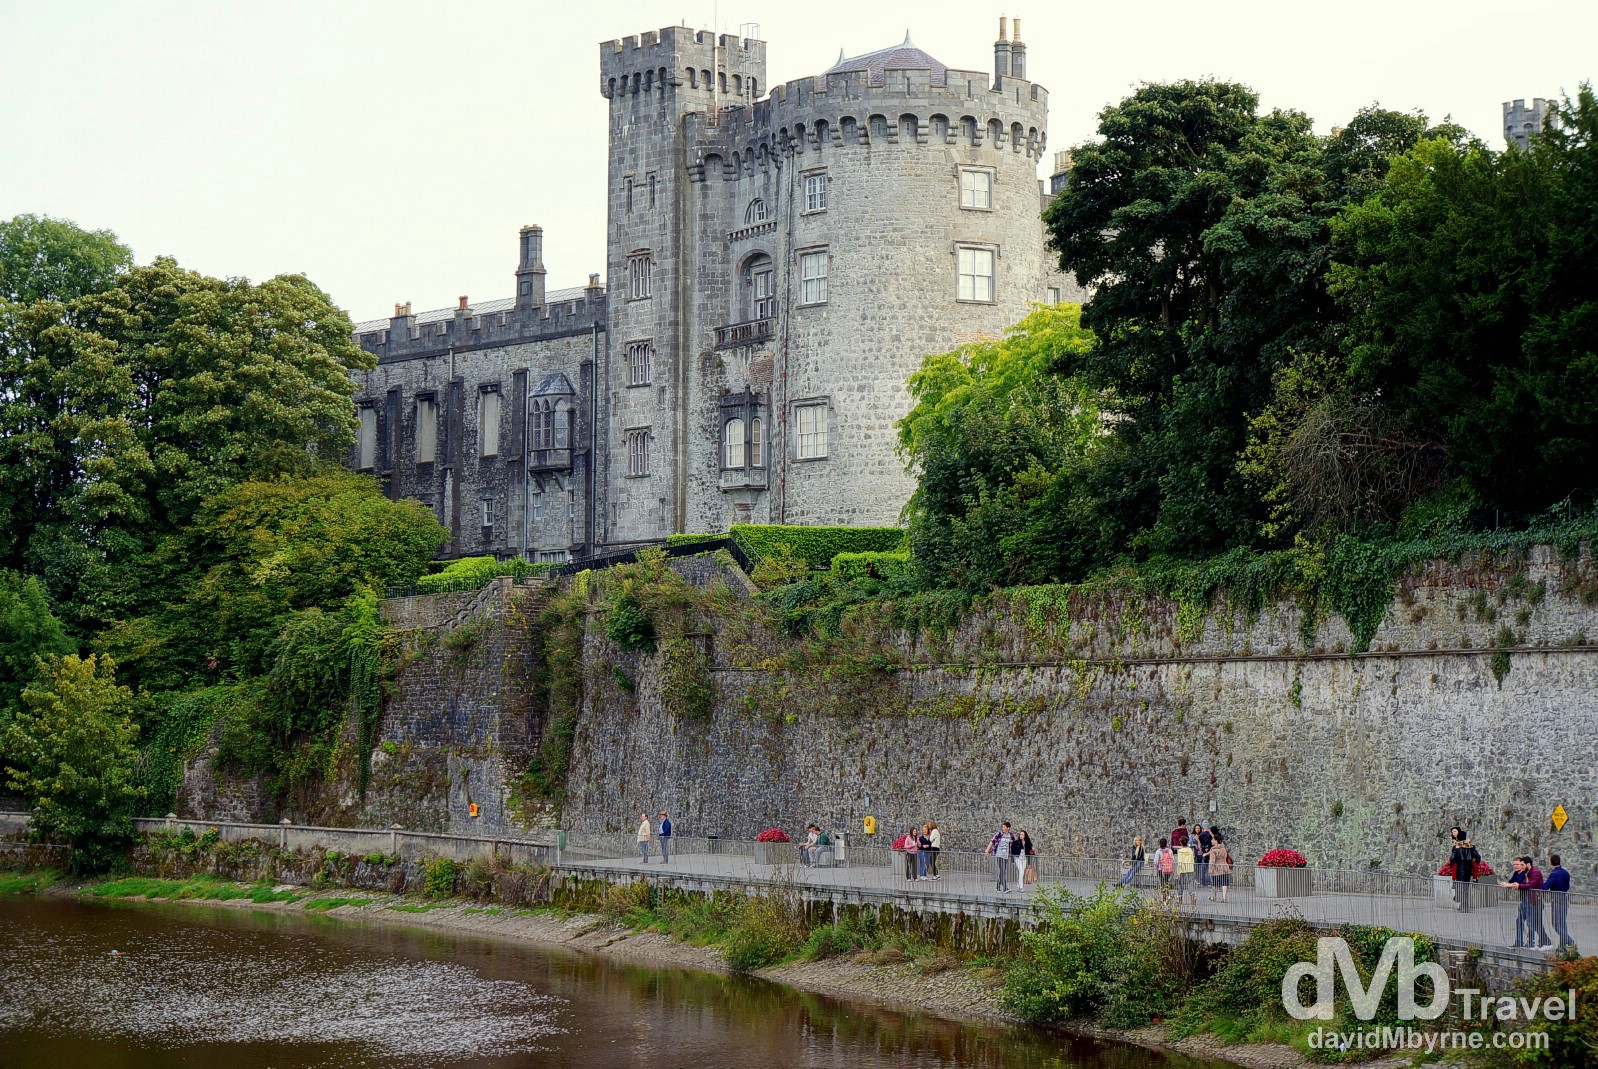 A portion of Kilkenny Castle as seen from a bridge over the River Nore in Kilkenny, Co. Kilkenny, Ireland. August 30, 2014.